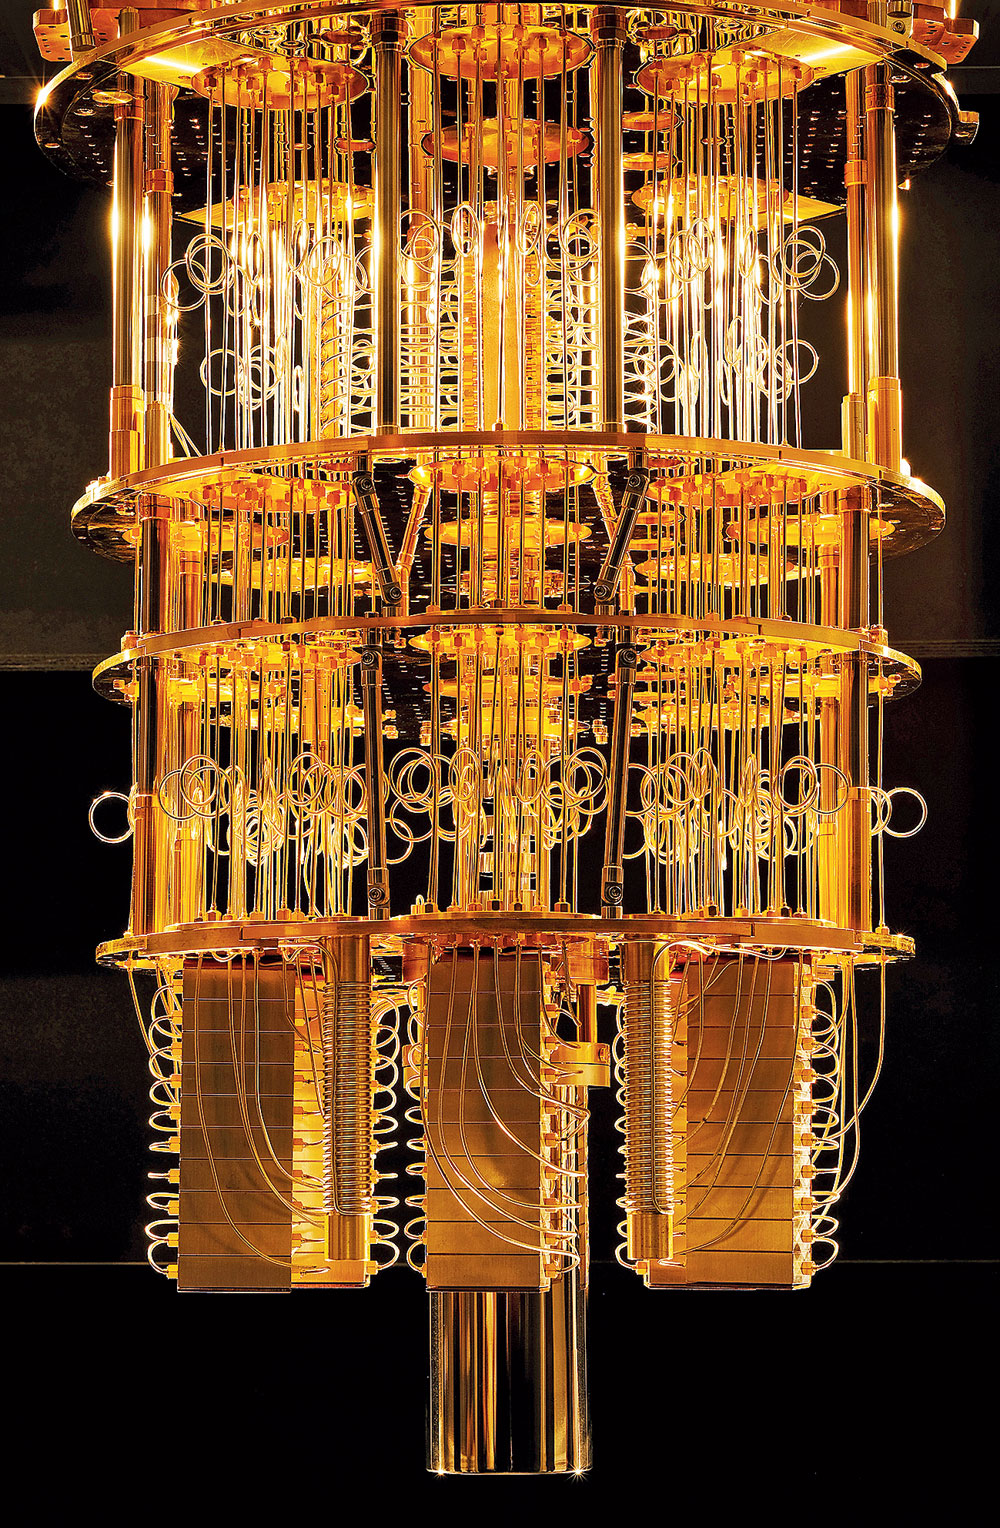 IBM's Q dilution refrigerator, which houses a quantum computer